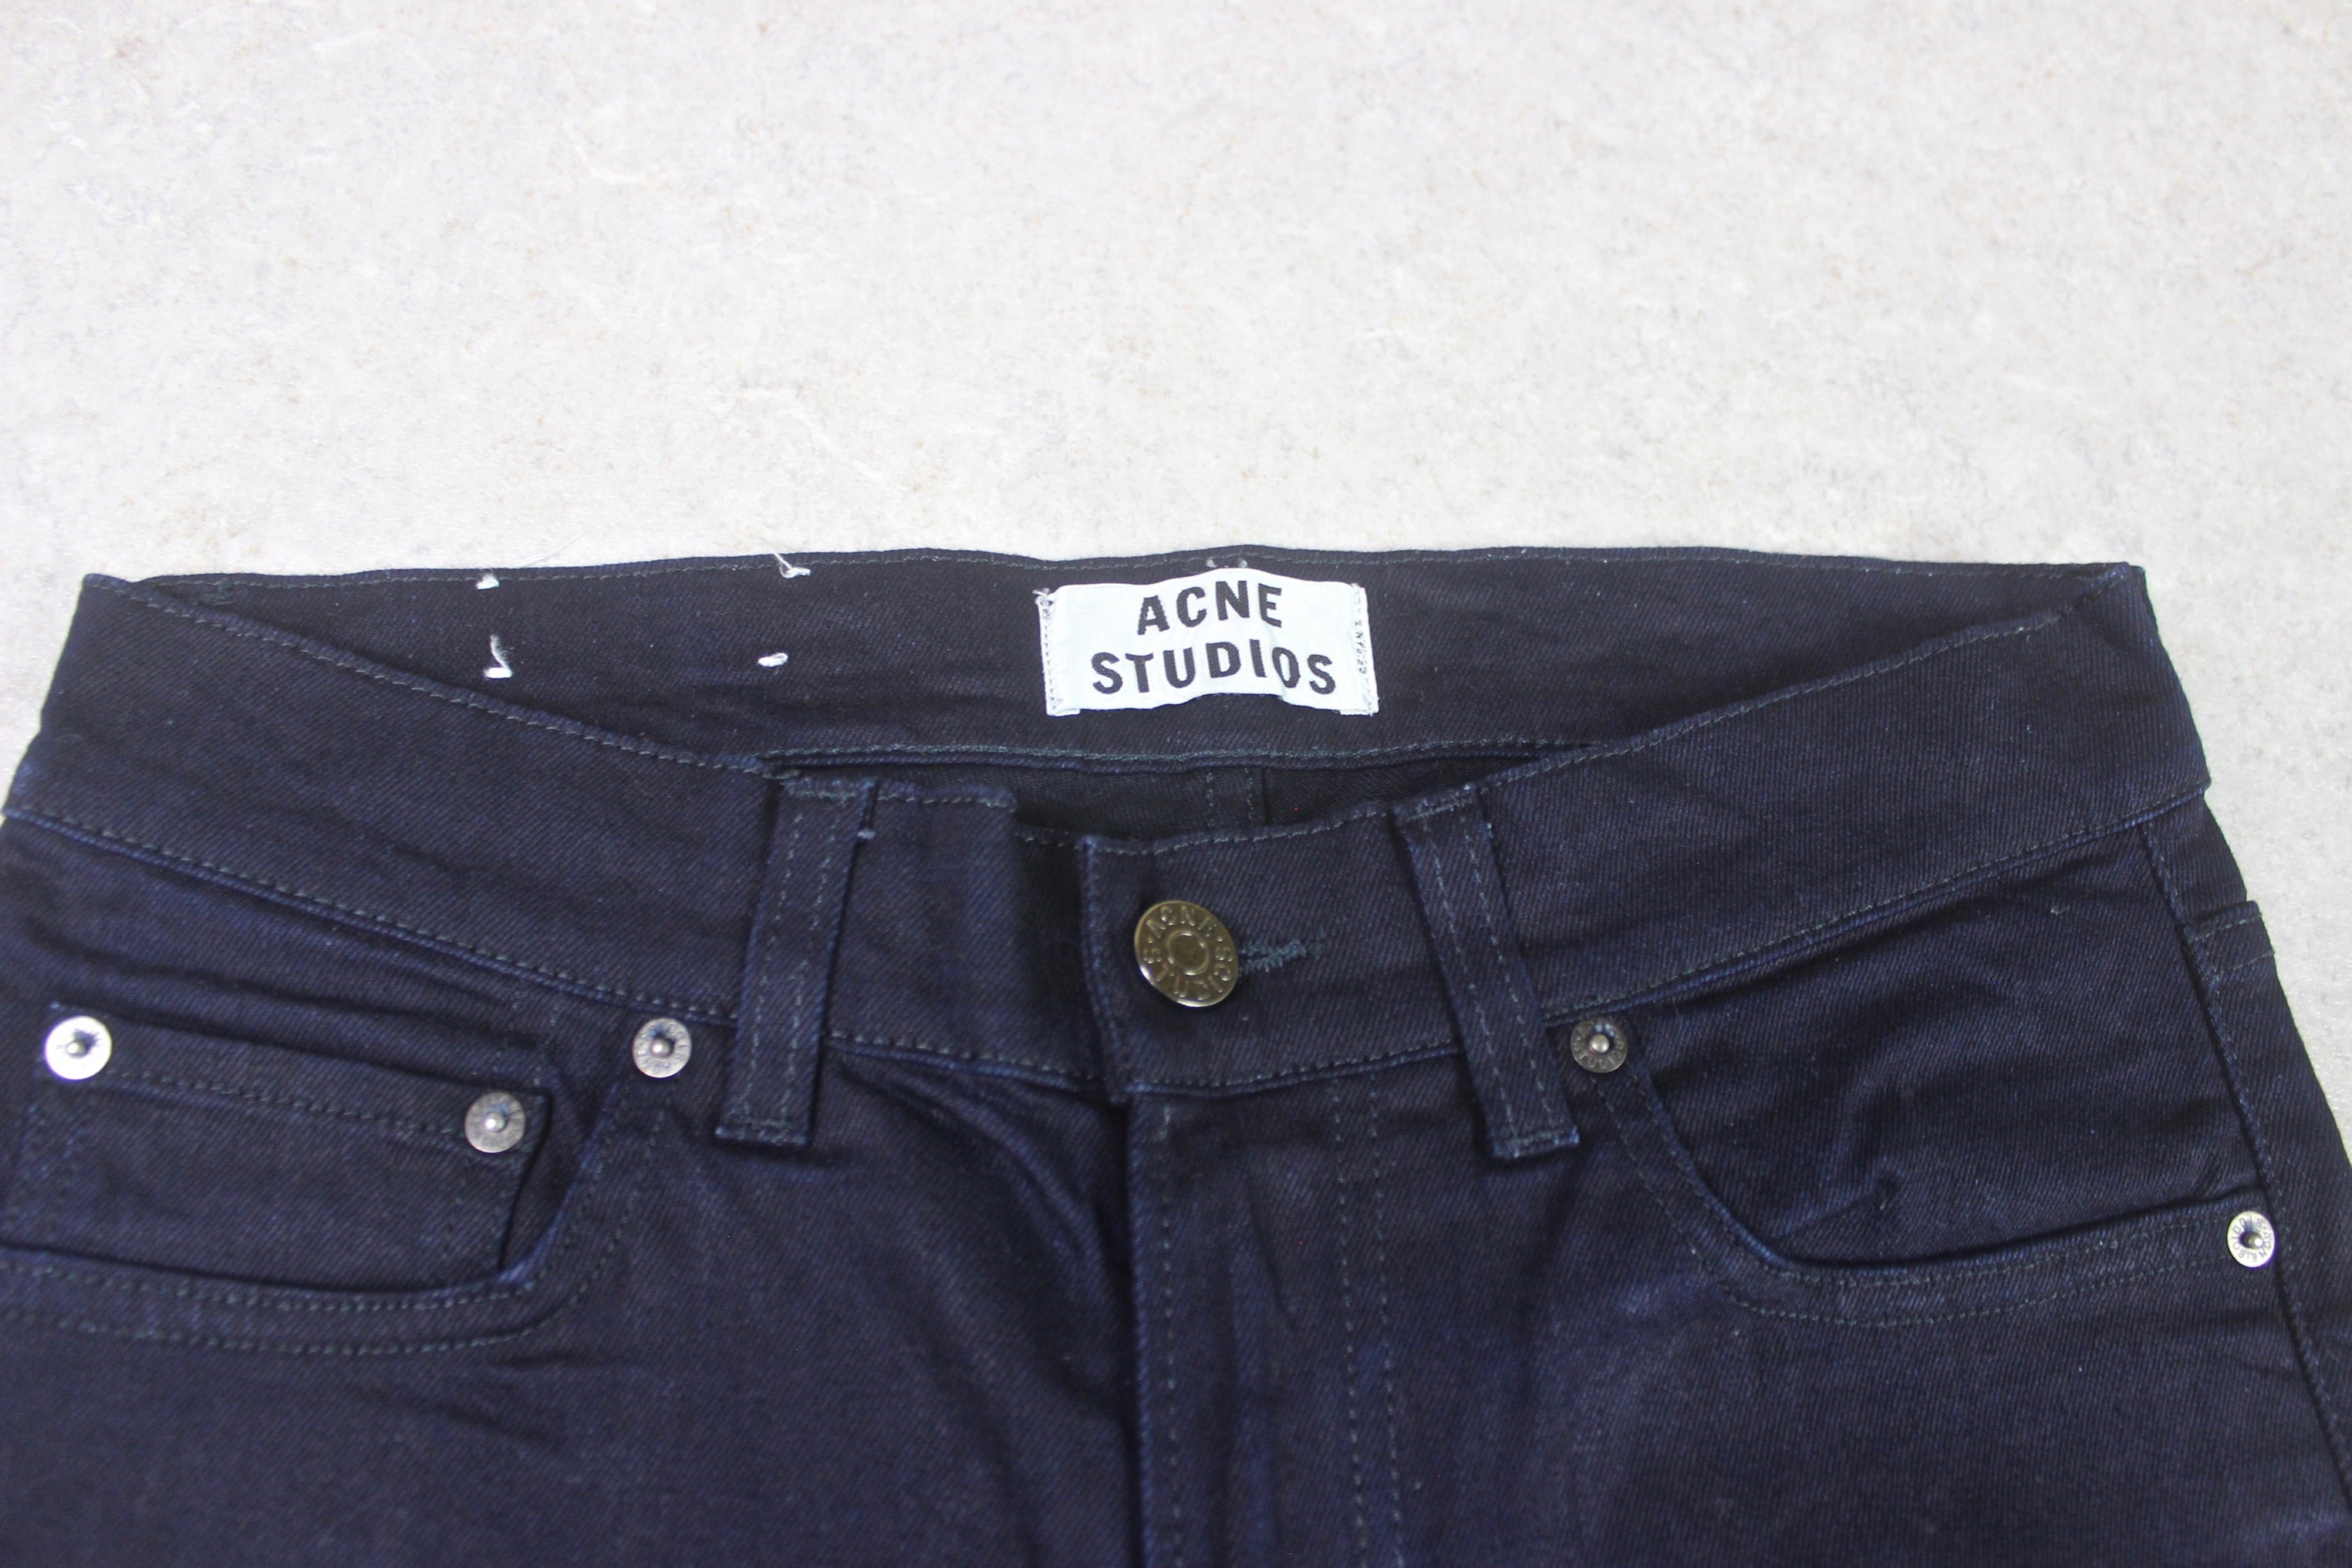 Acne Studios - Ace Navy Cash Jeans - Blue - 29/32